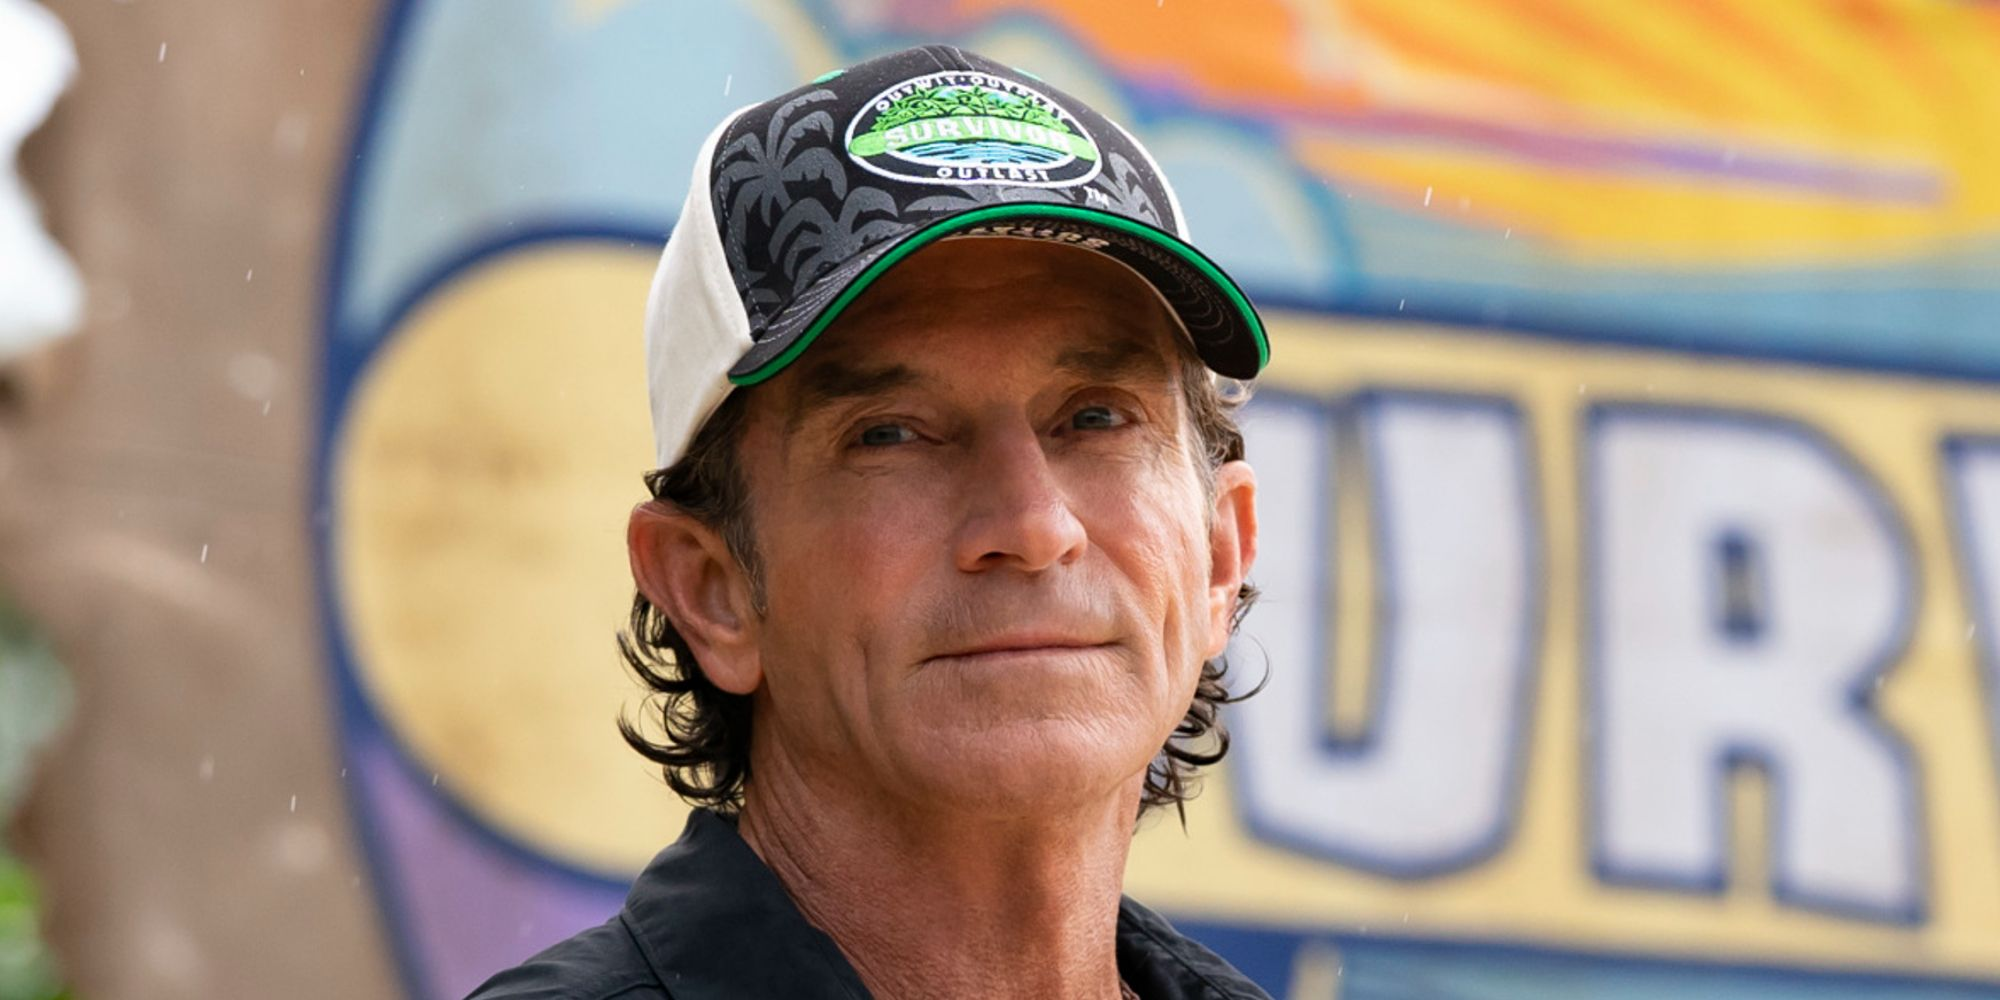 Survivor Fans React To Jeff Probst Changing 'Come On In Guys' Phrase